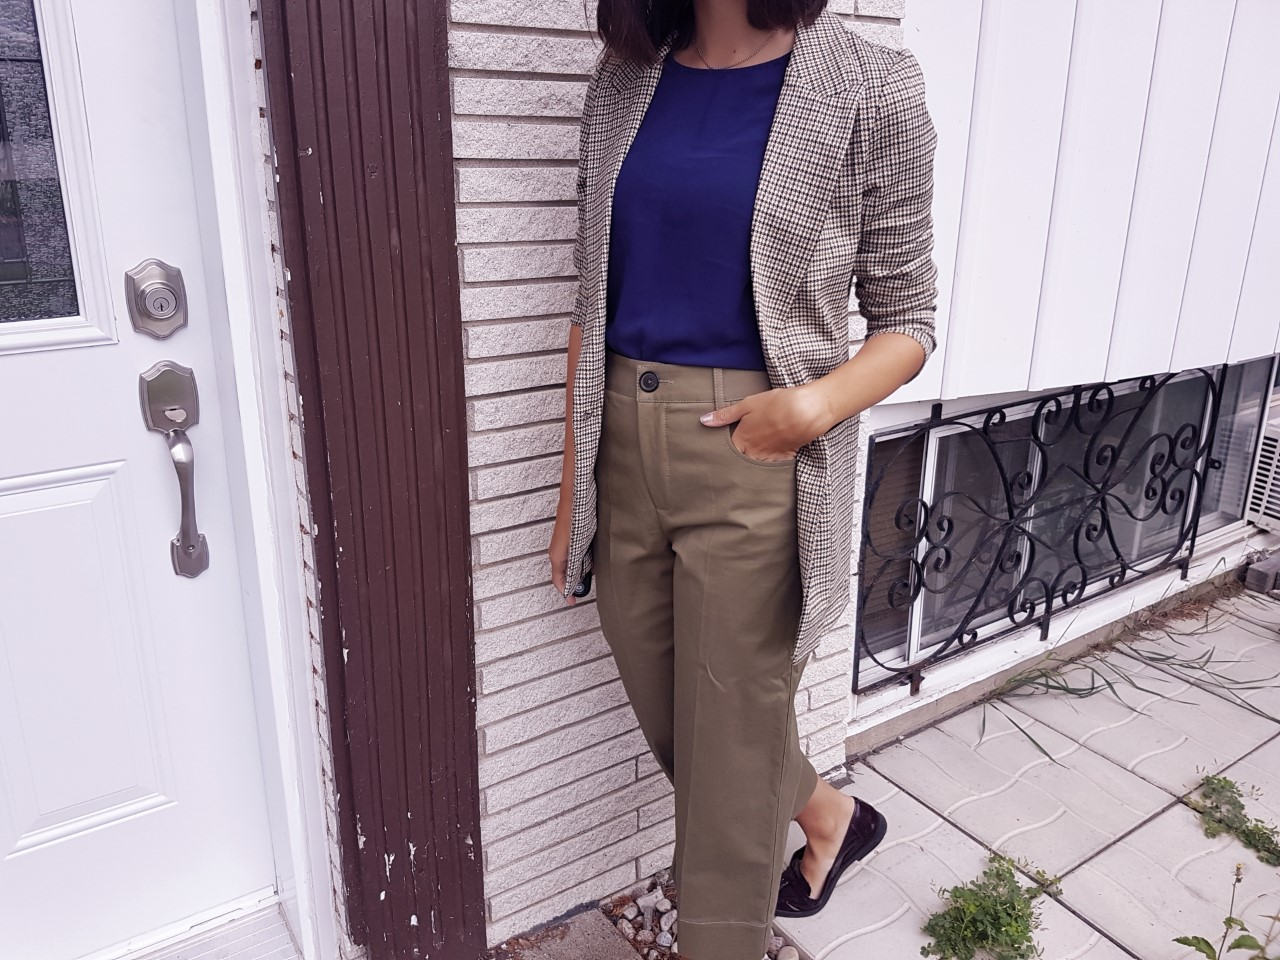 menswear, OOTD, outfit details, street style, personal style, H&M, Zara, Fall dressing, fall style, fashion blogger, Montreal fashion blogger,